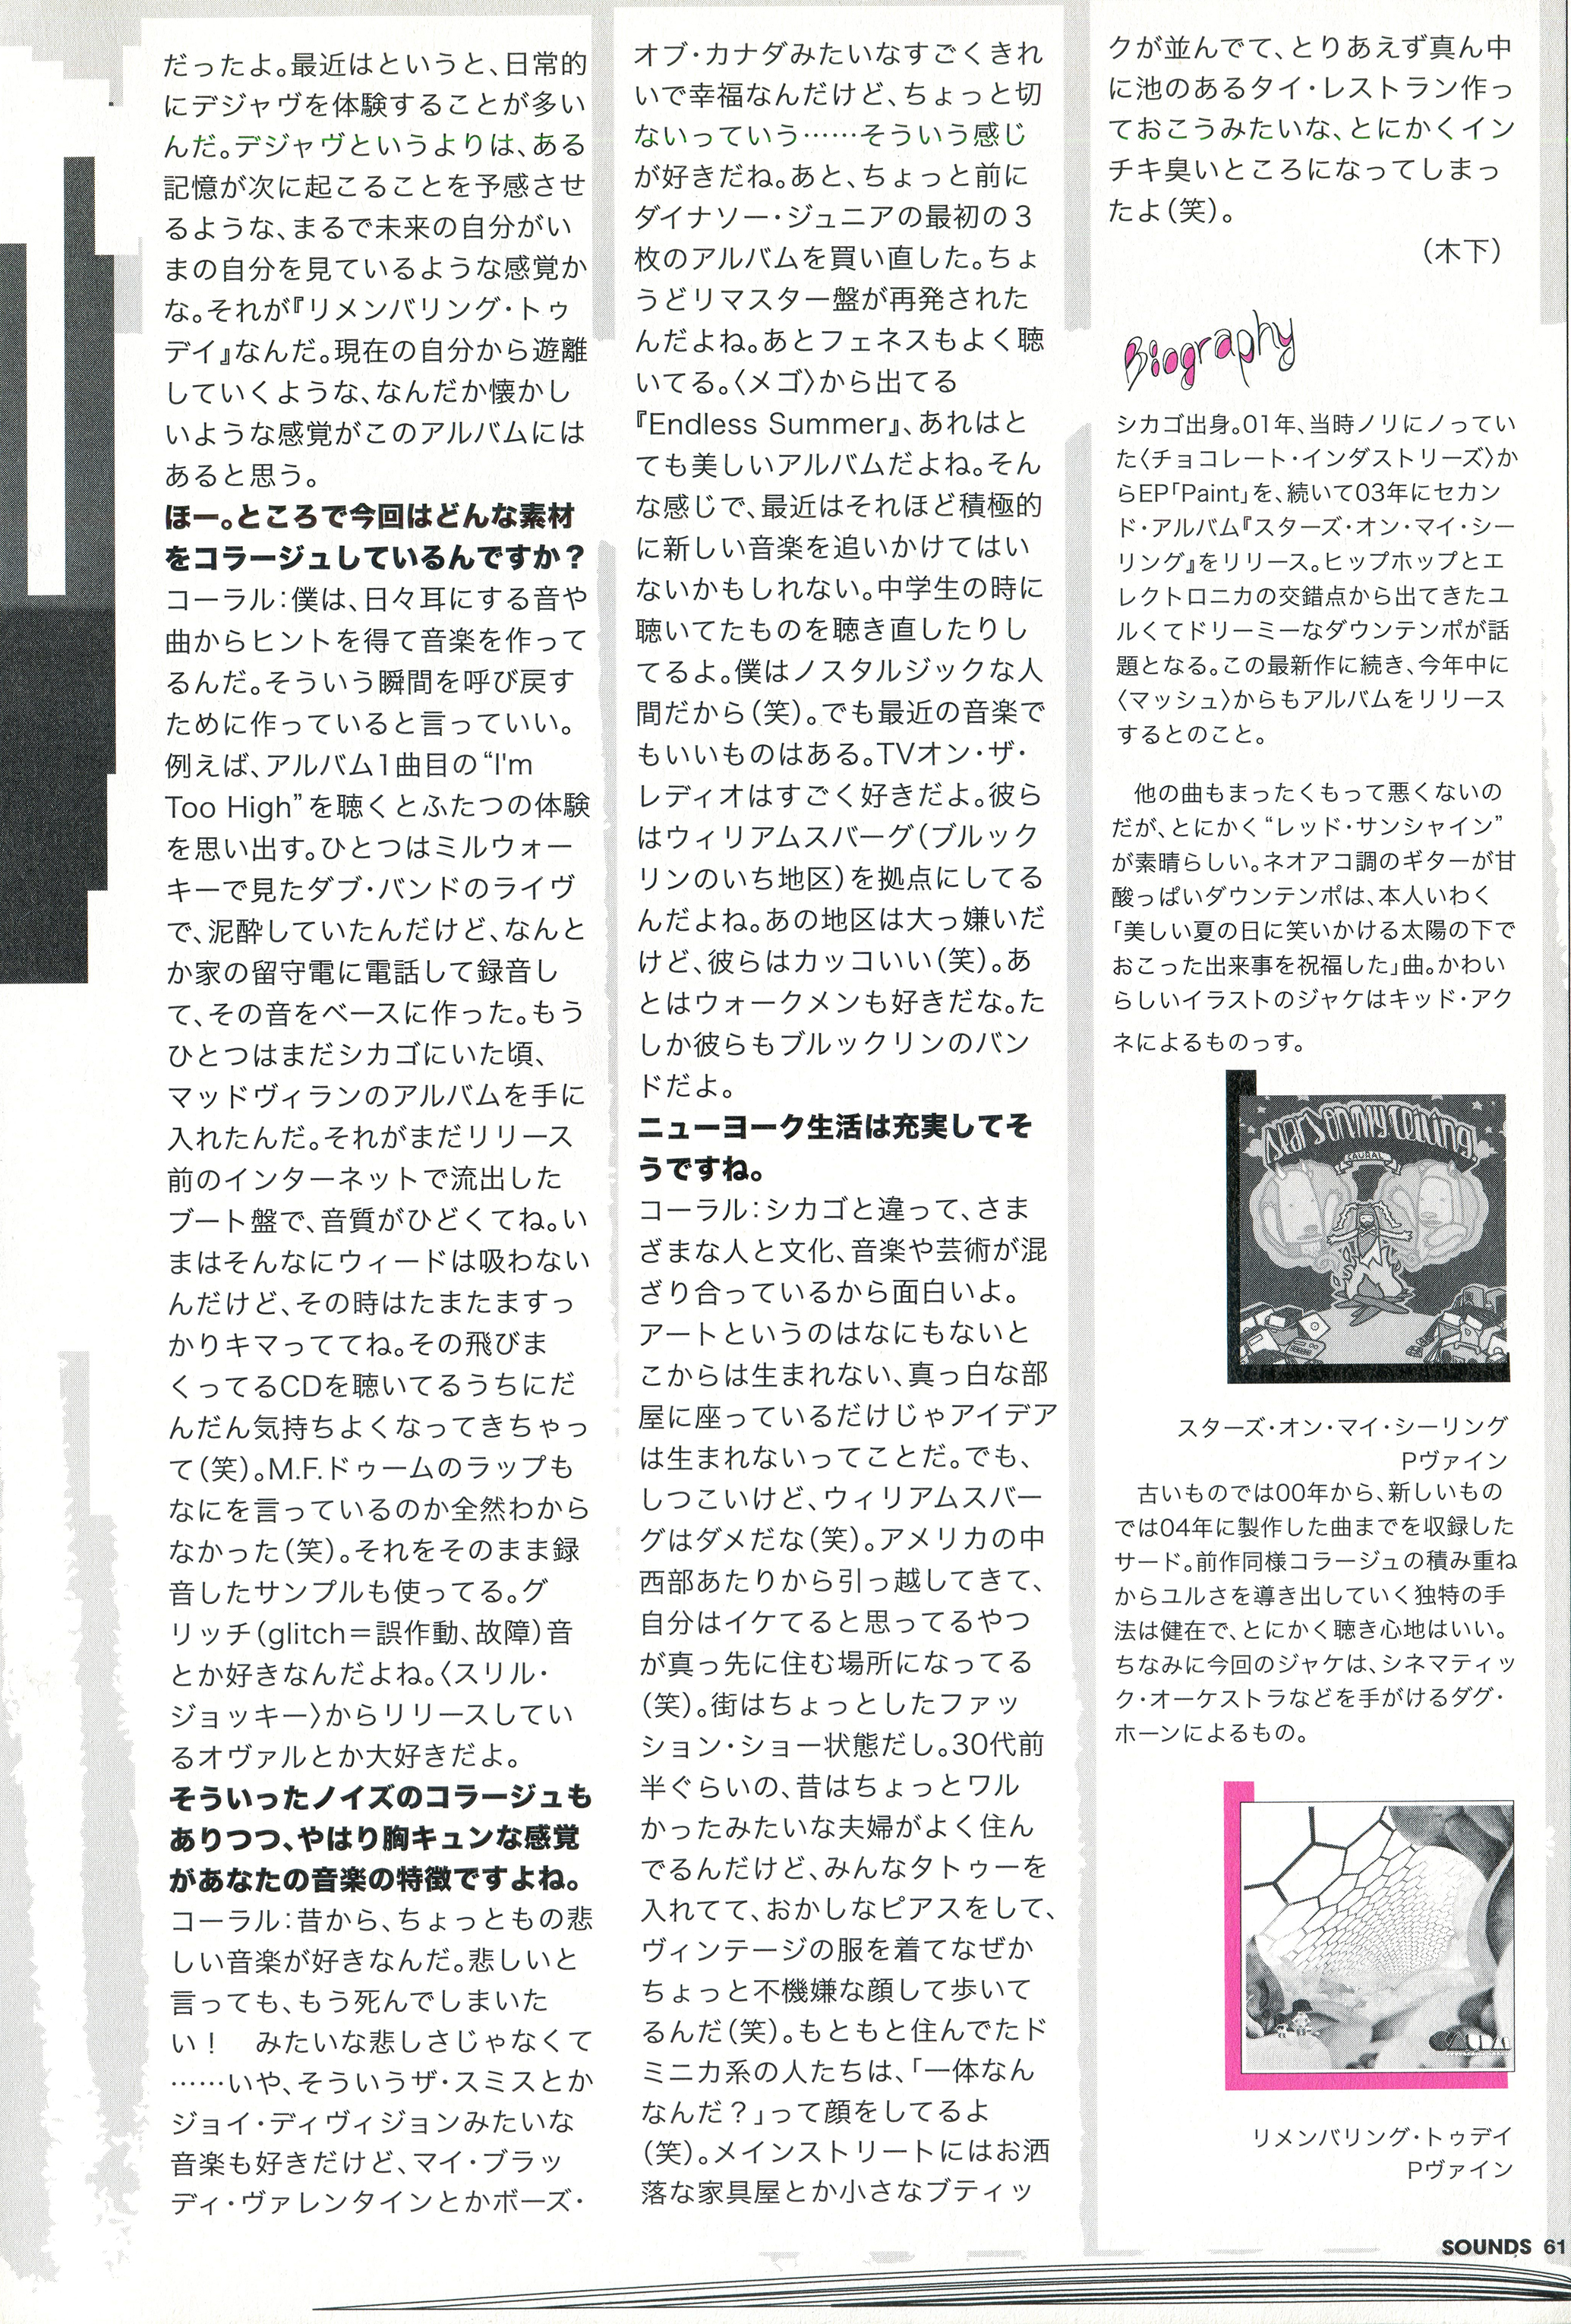 Remix Magazine - November 2005 - Issue 173 - Caural Interview - 2_SMALL.jpg